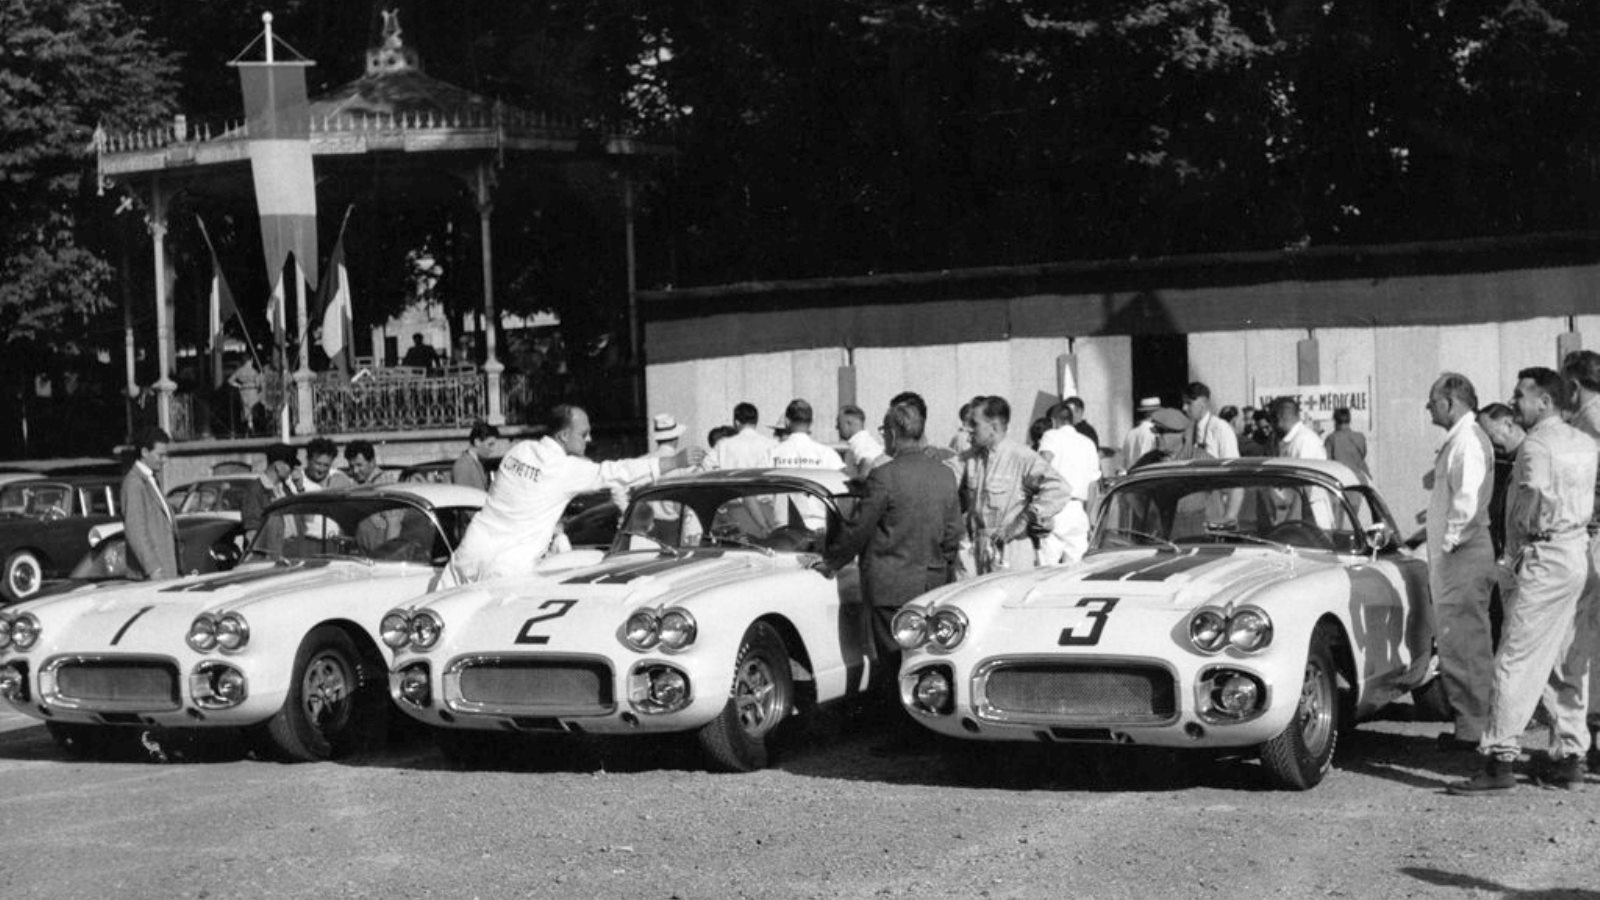 Whatever happened to the LeMans Corvettes from 1960?